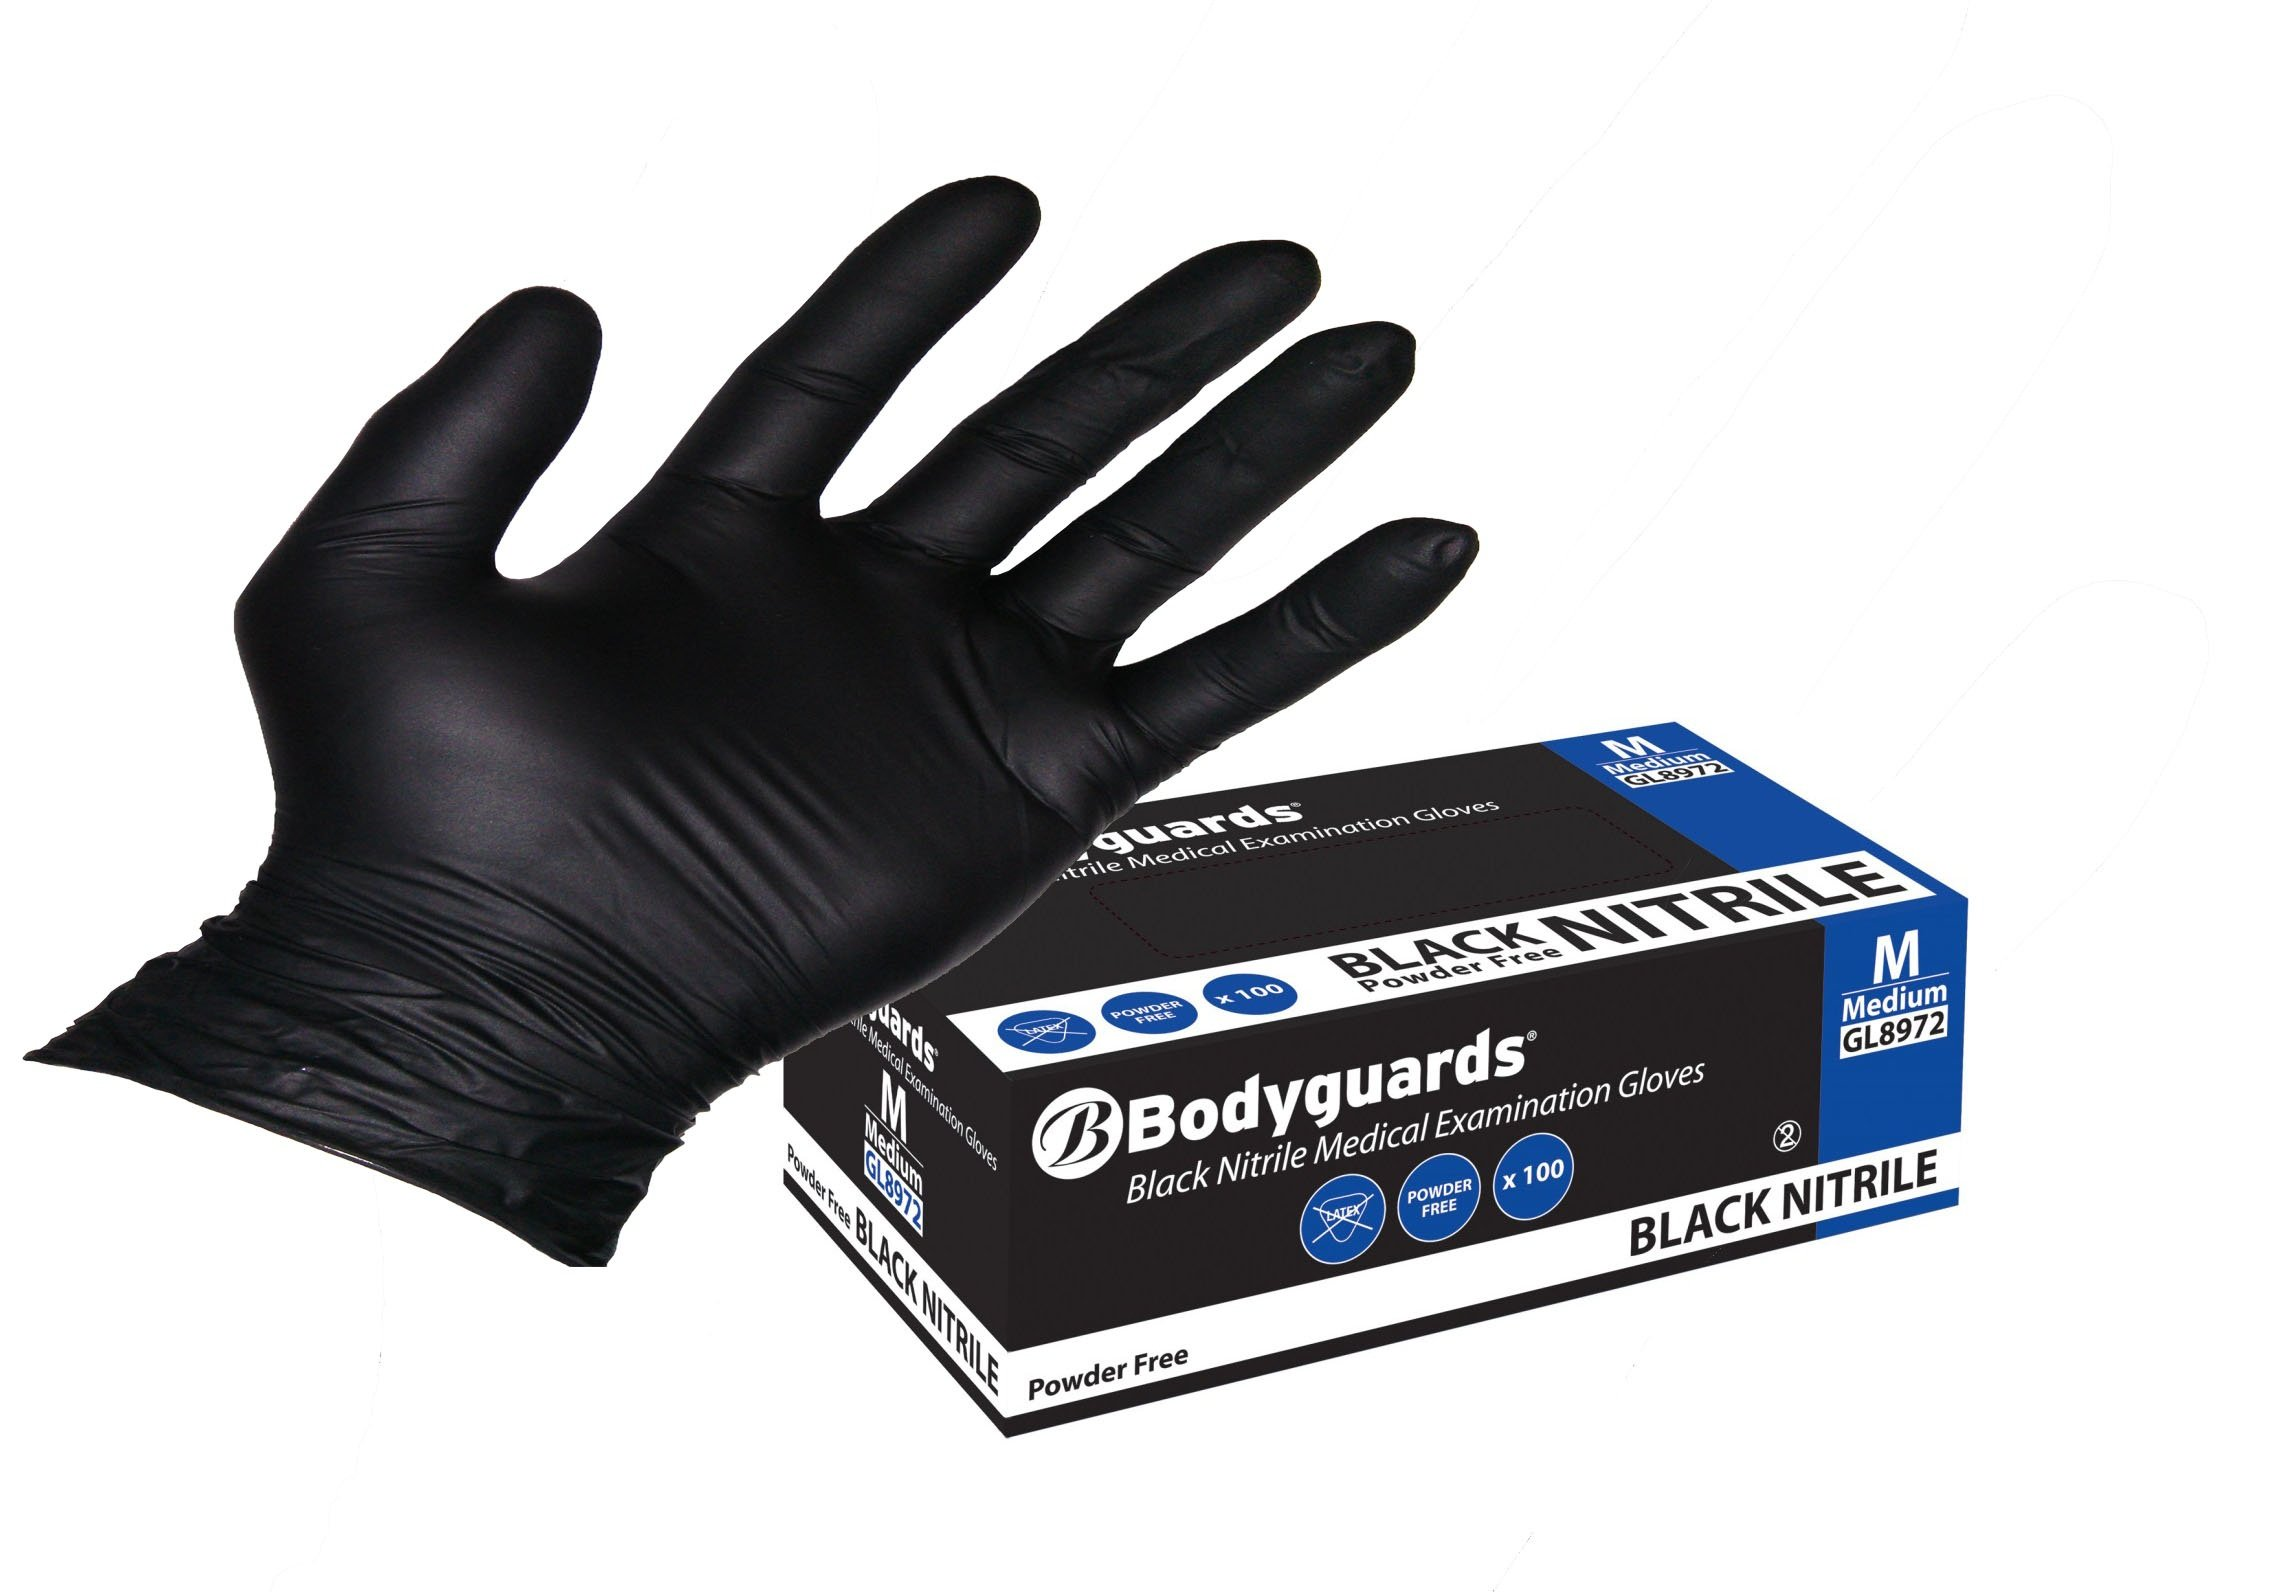 Unigloves Select Powder Free Black Latex Disposable Gloves by Unigloves Boxed x100 Extra Small